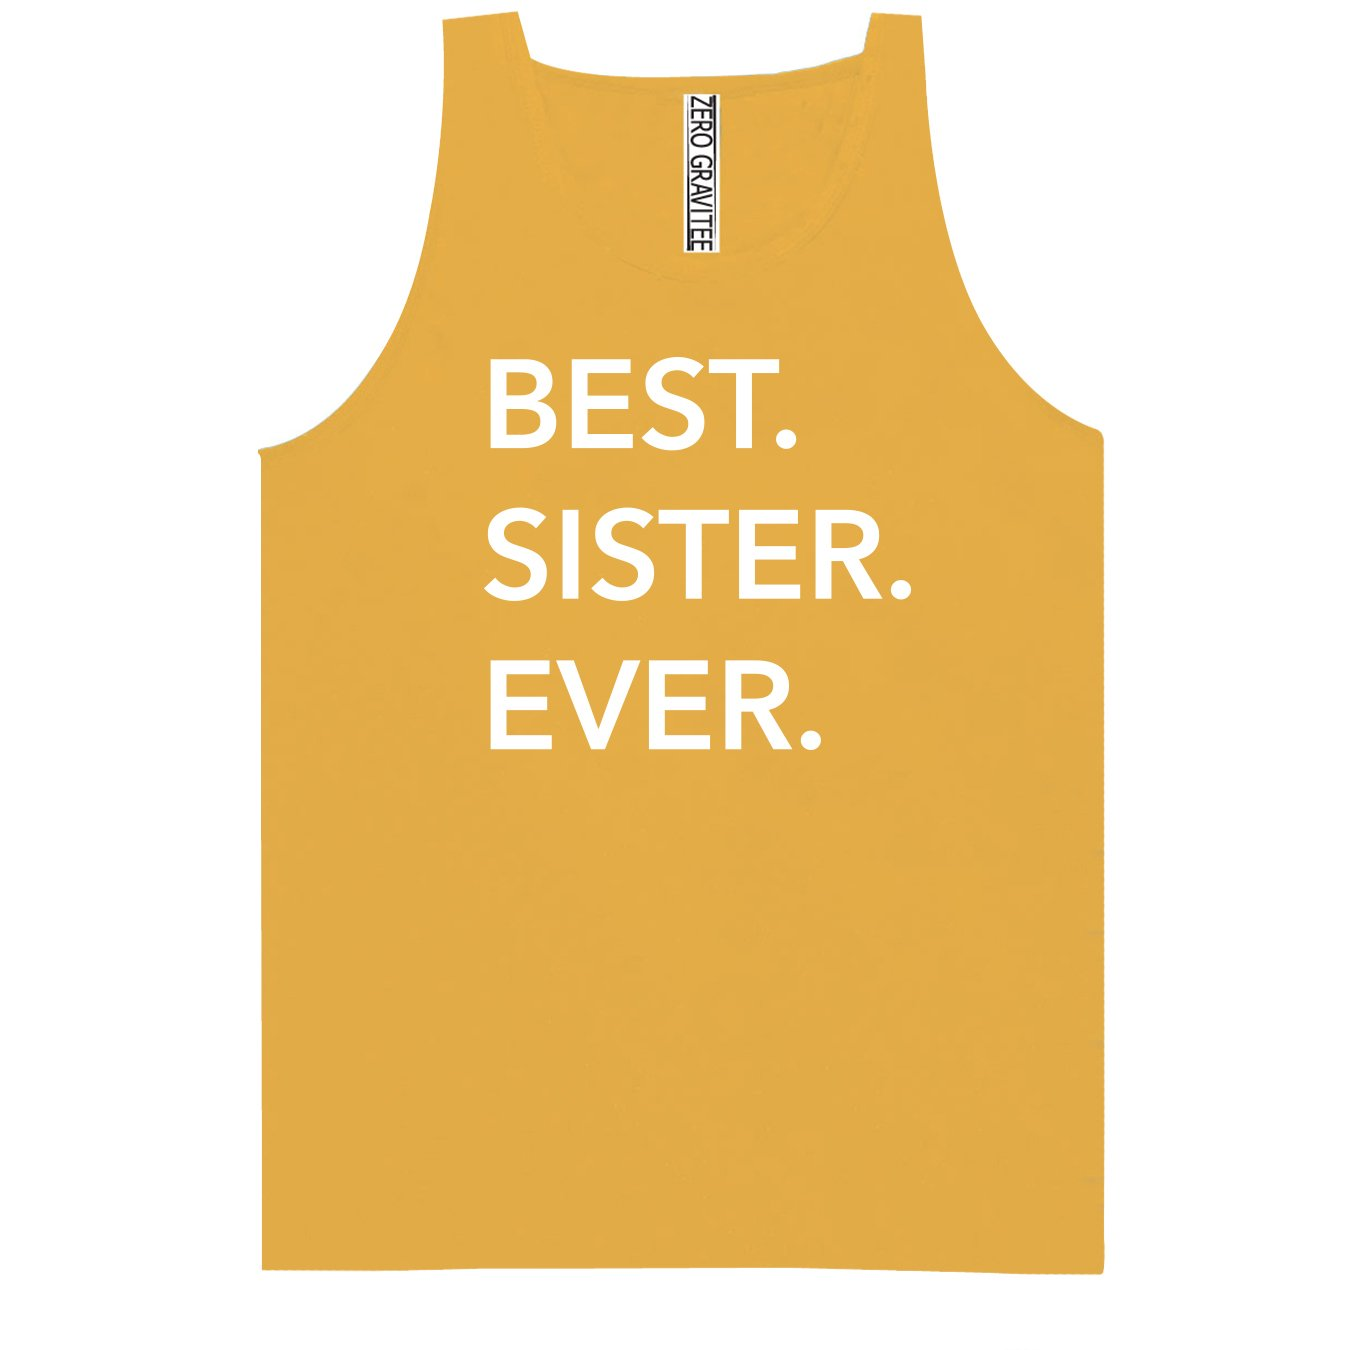 Pigment Dyed Ringspun Tank Tops in 12 colors YOUTH Best Sister Ever